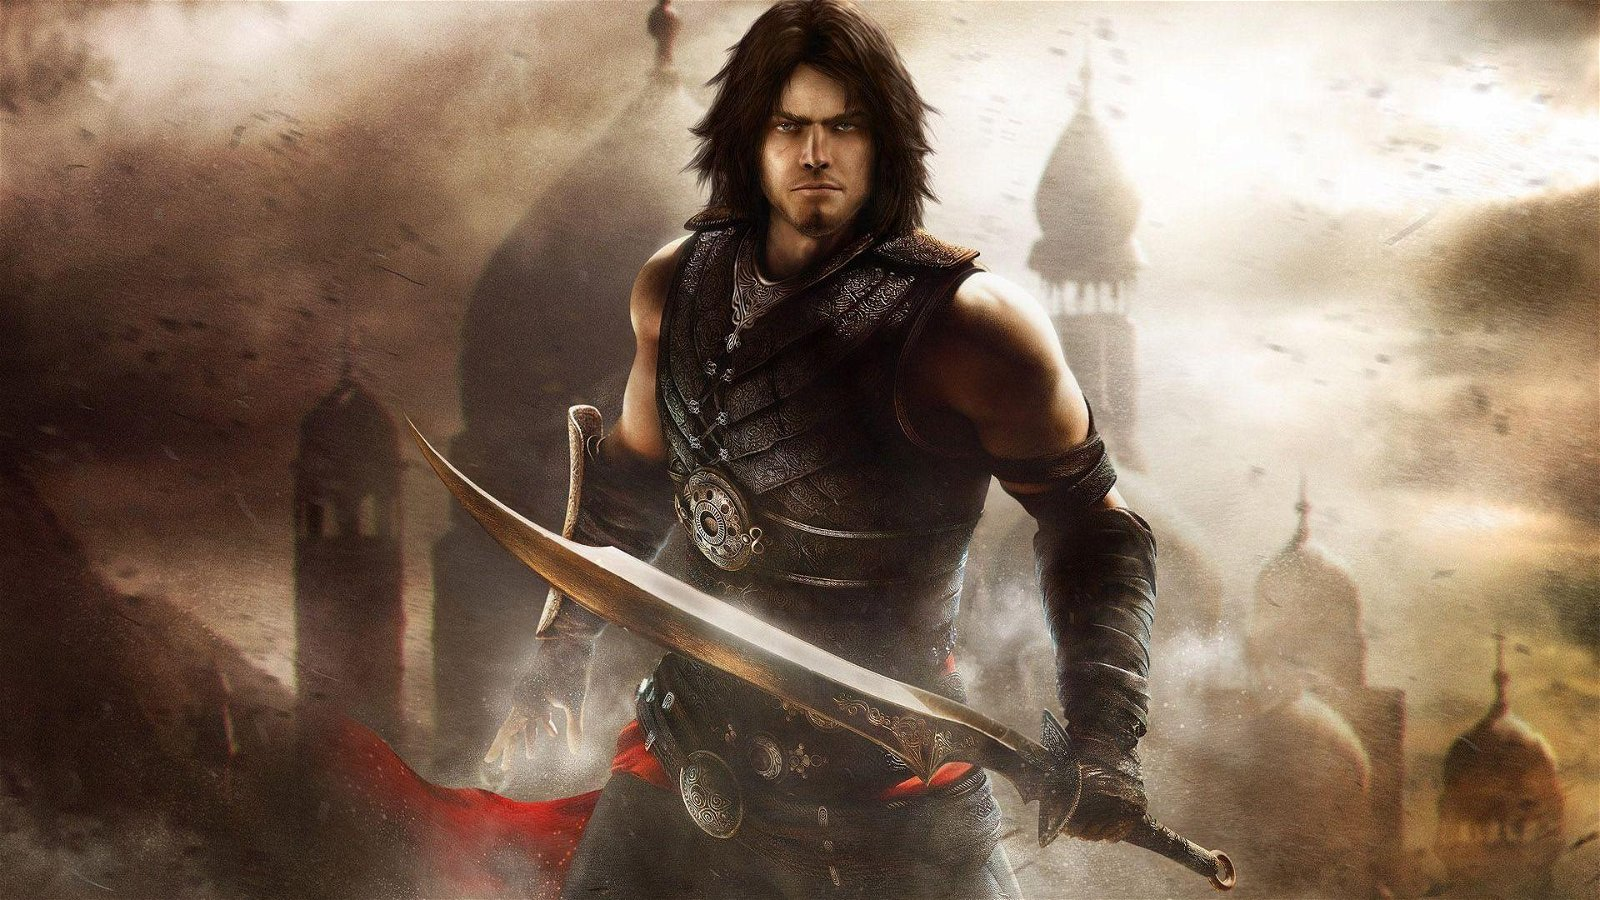 https://cdn.cgmagonline.com/wp-content/uploads/2010/10/prince-of-persia-the-forgotten-sands-ps3-review-3.jpg